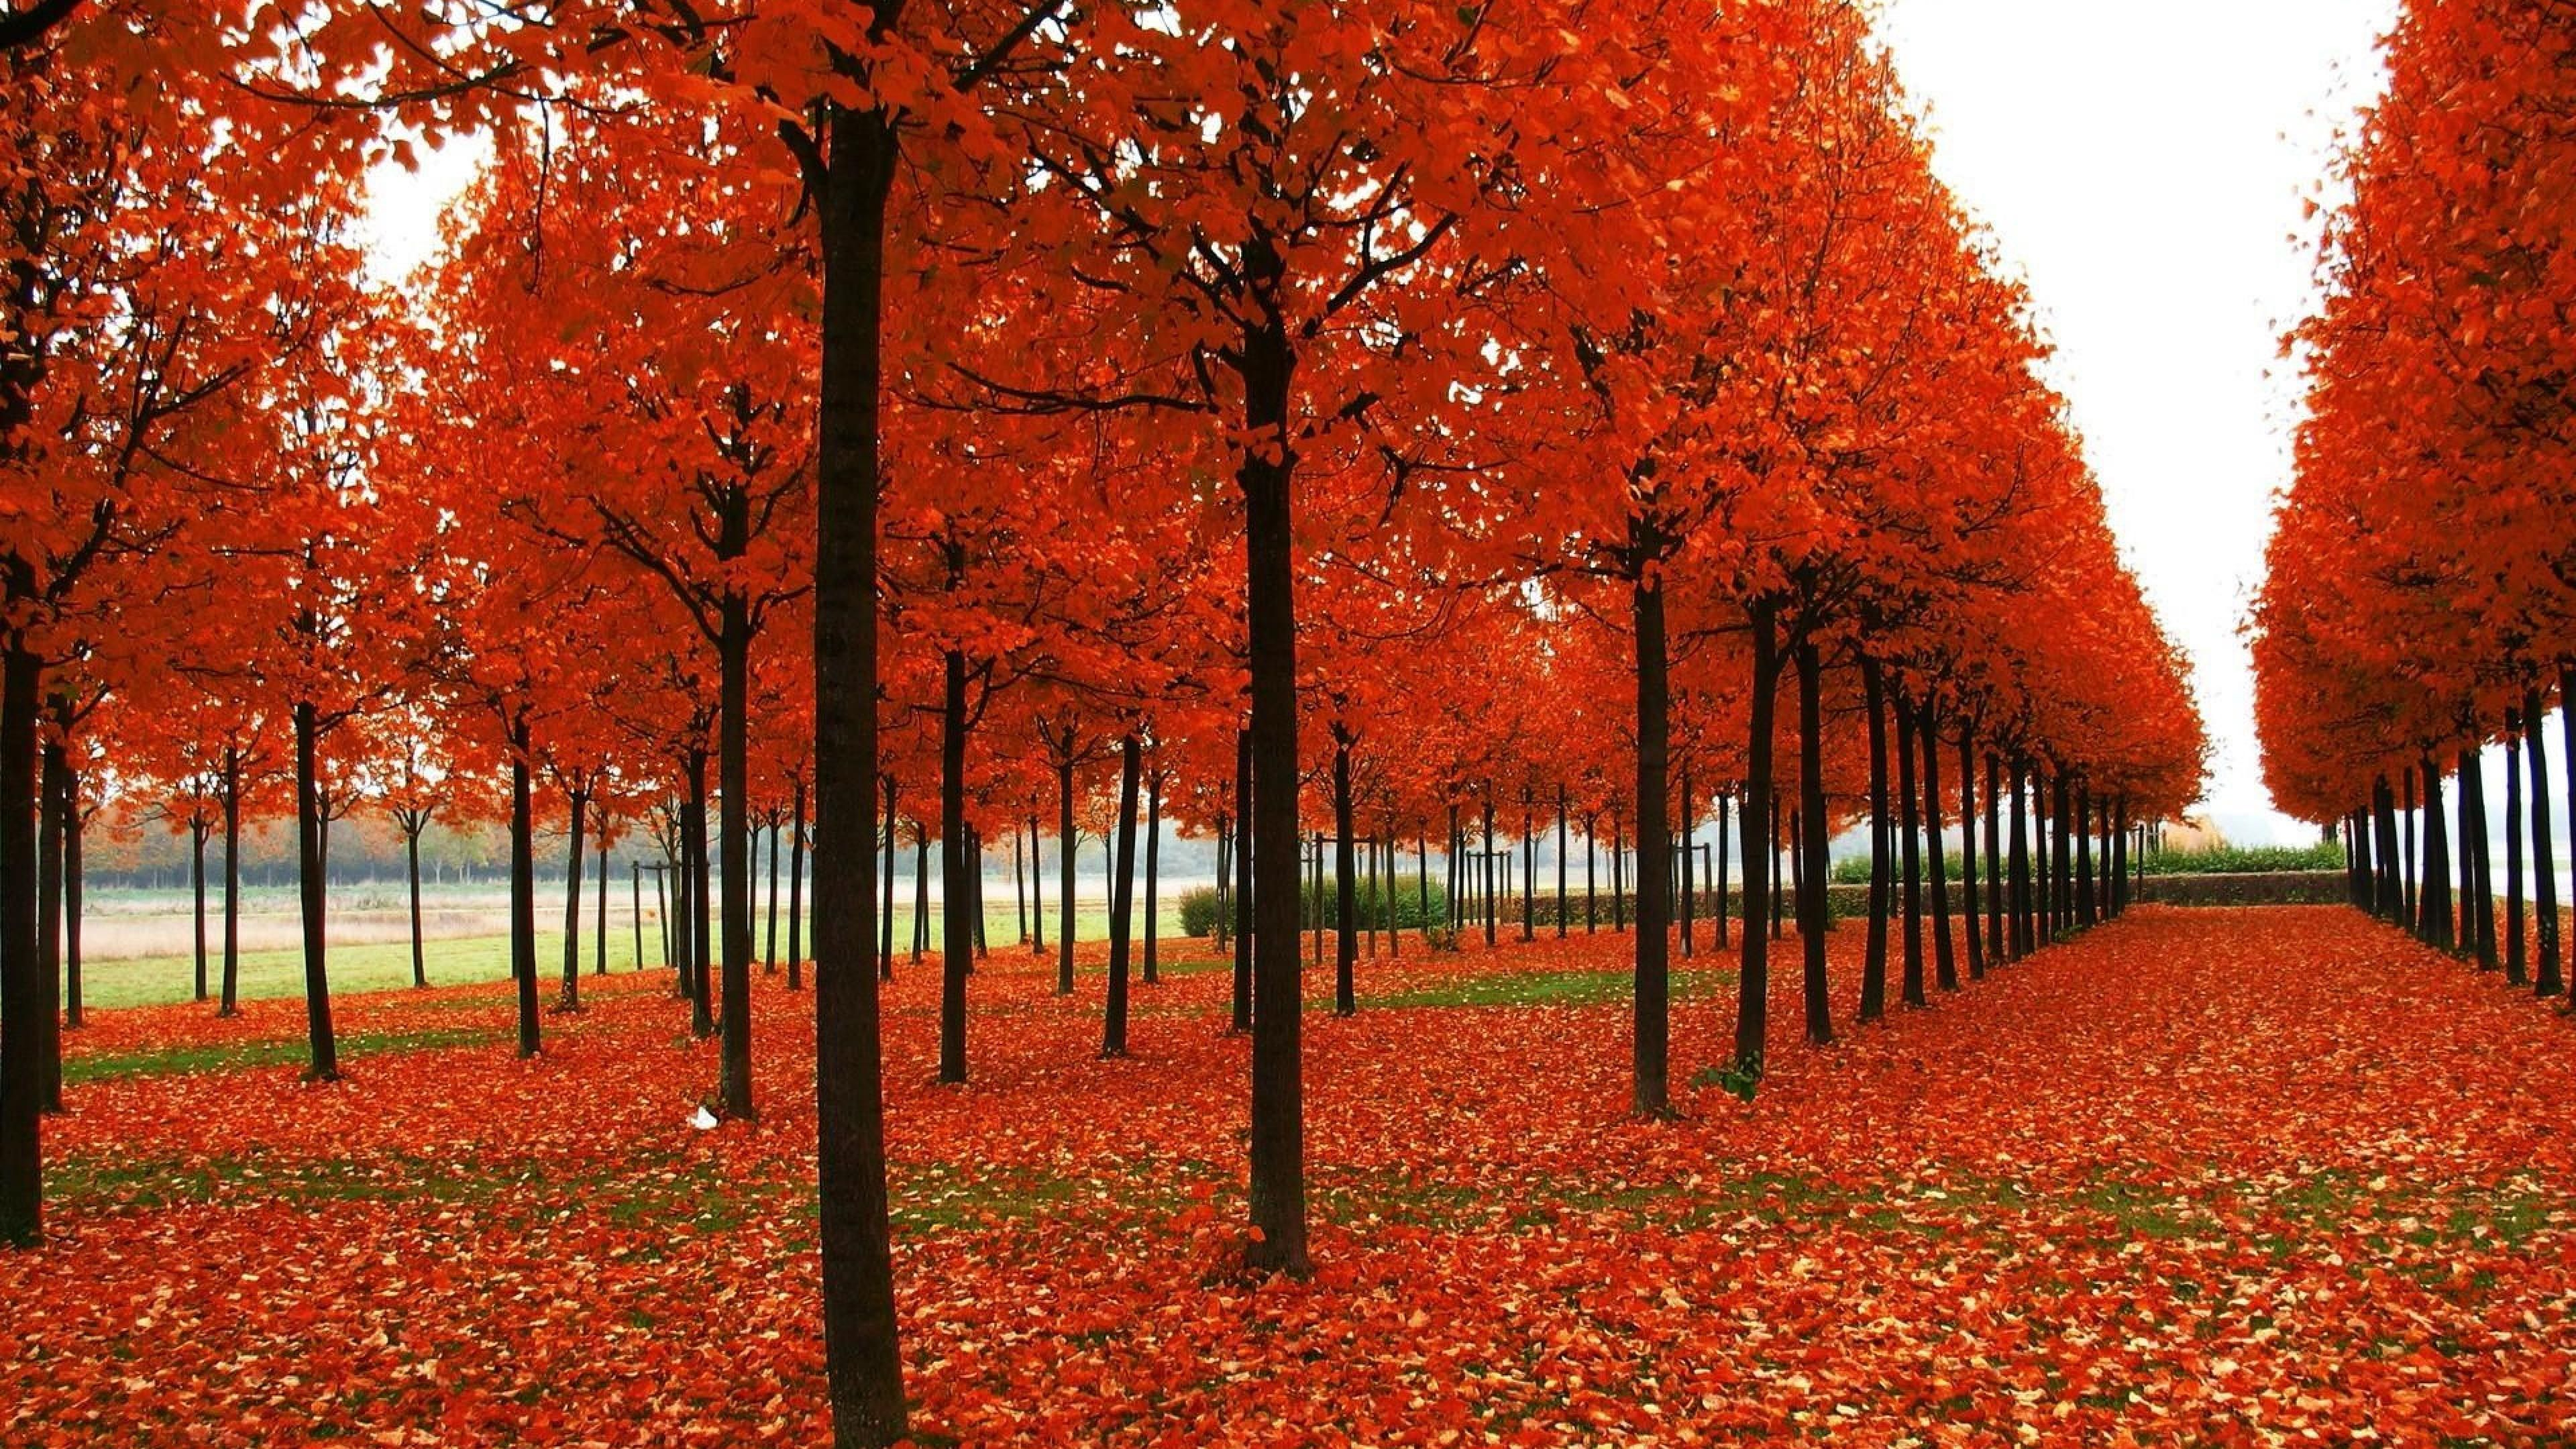 Download Wallpaper Horse Autumn - 24f046c9d6e7bf859636b535d28400eb  Picture_135785.jpg